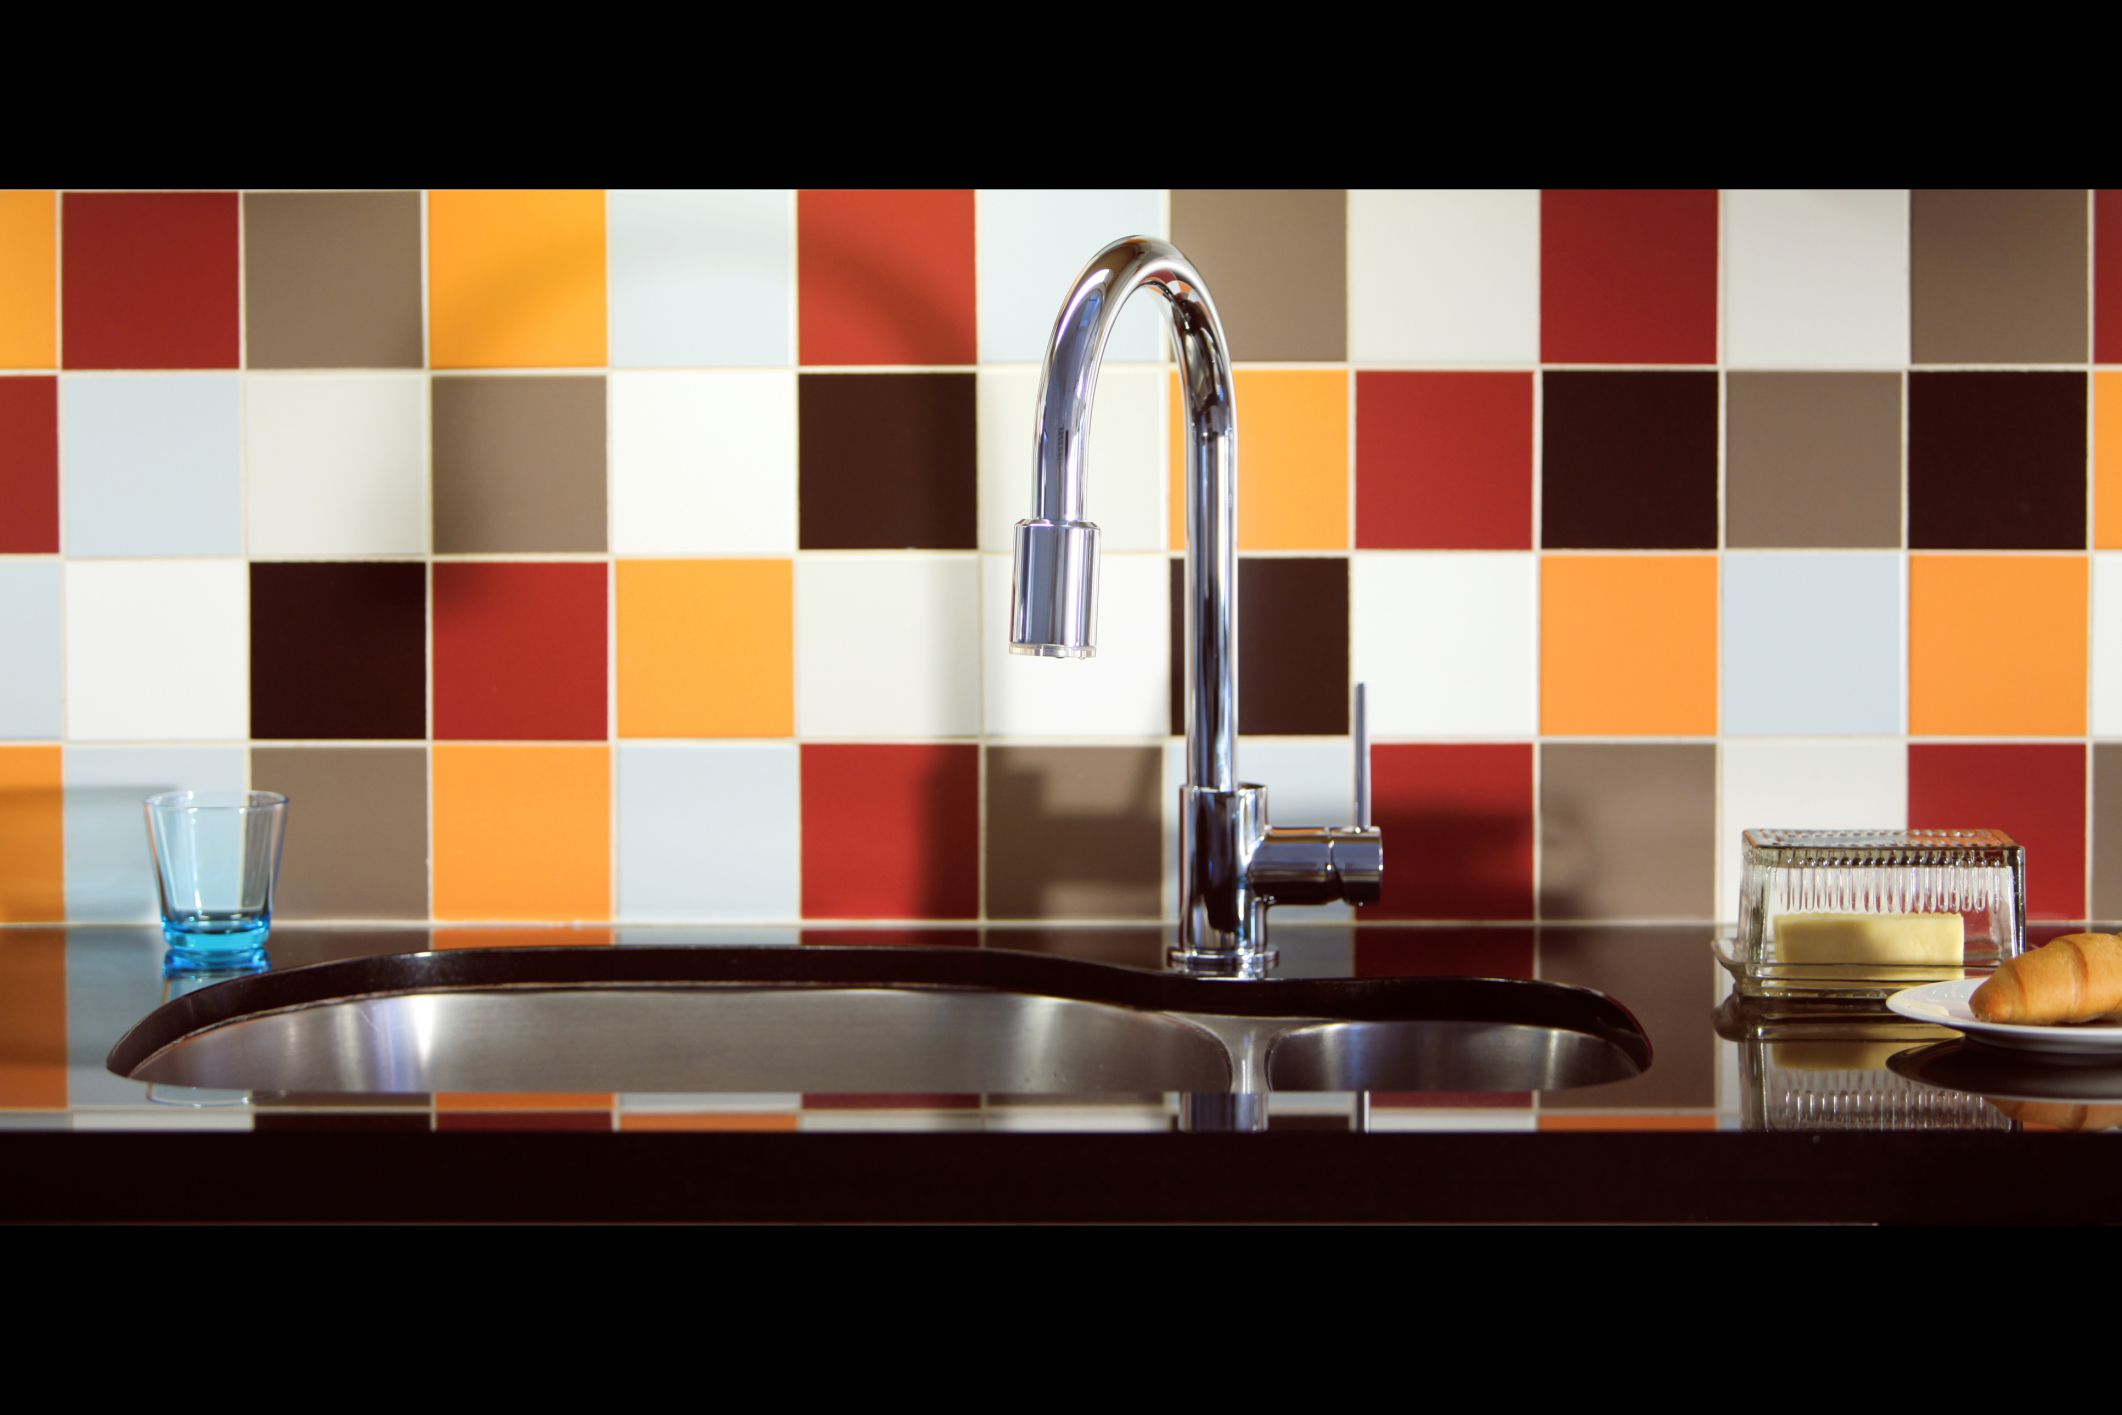 Kitchen Tiles Orange jaw-dropping tile ideas for your kitchen